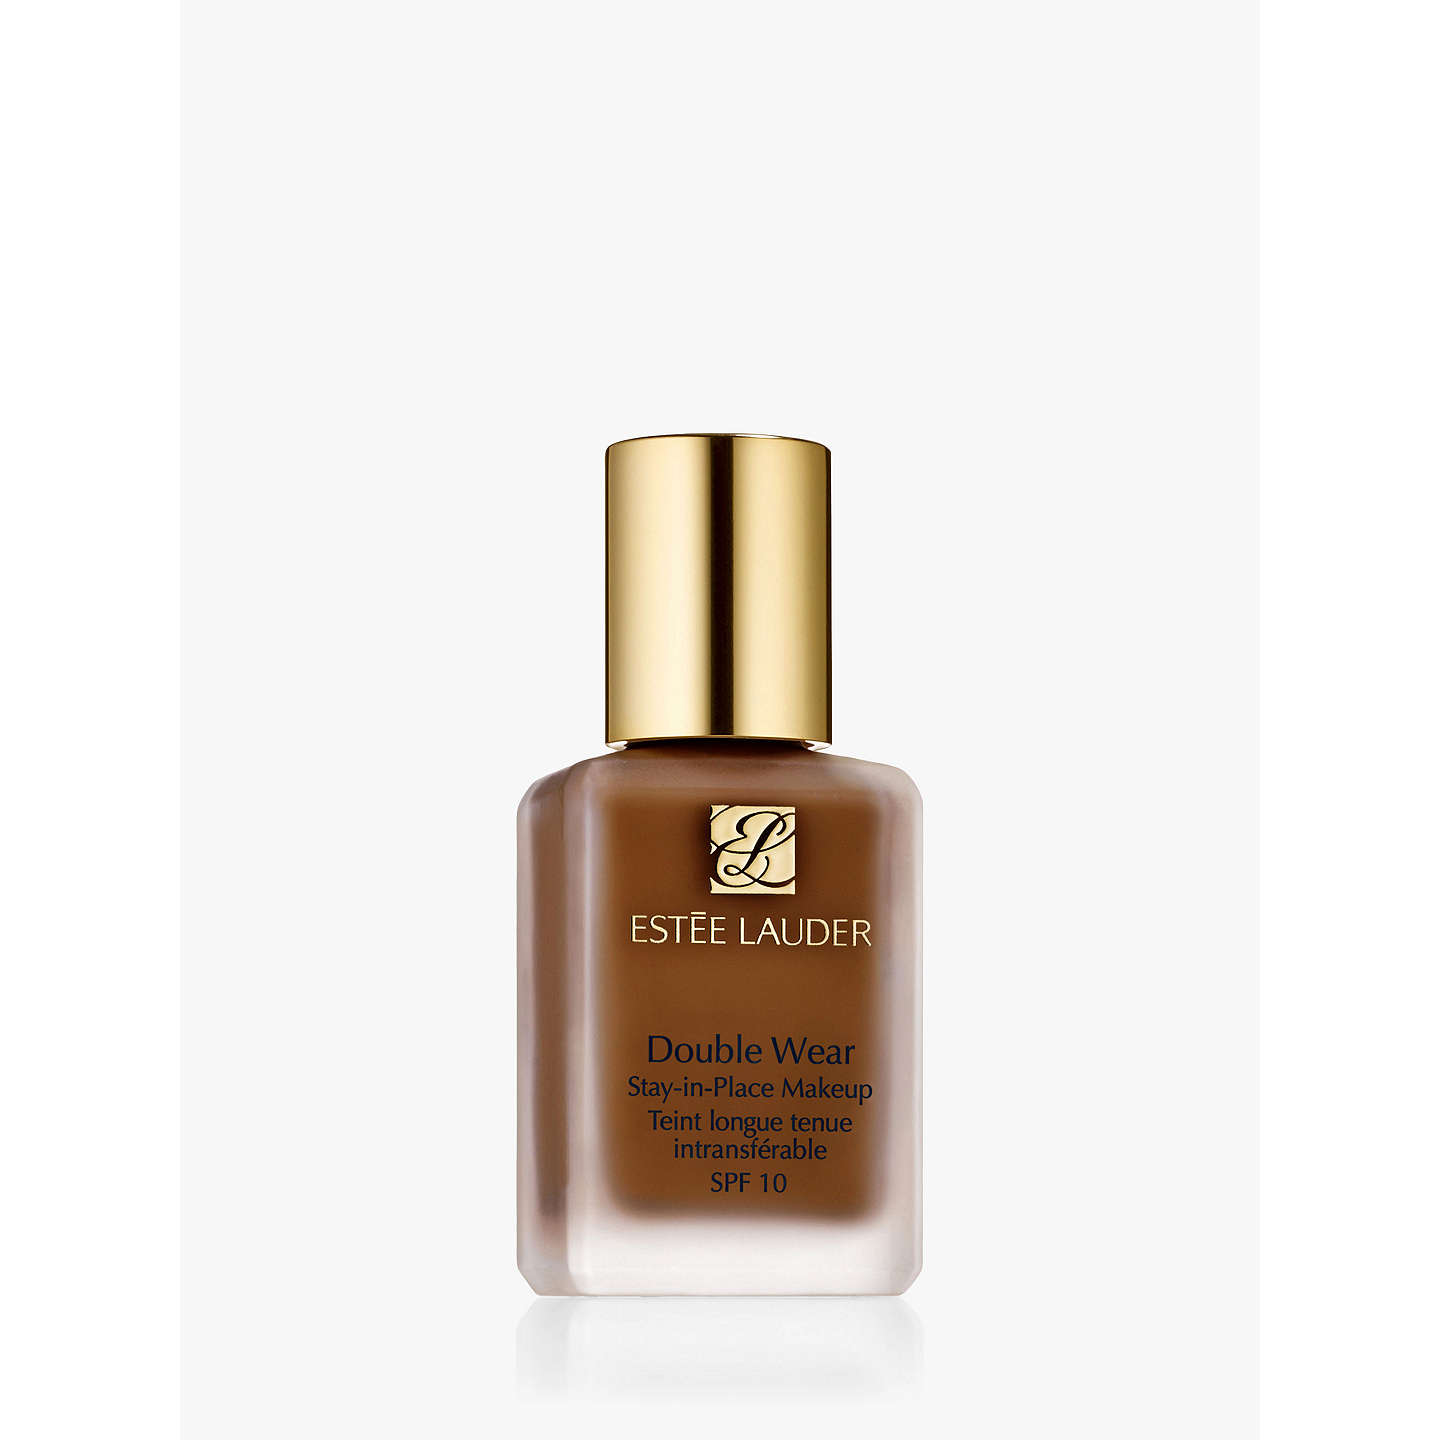 BuyEstée Lauder Double Wear Stay-In-Place Foundation Makeup SPF10, 7W1 Deep Spice Online at johnlewis.com